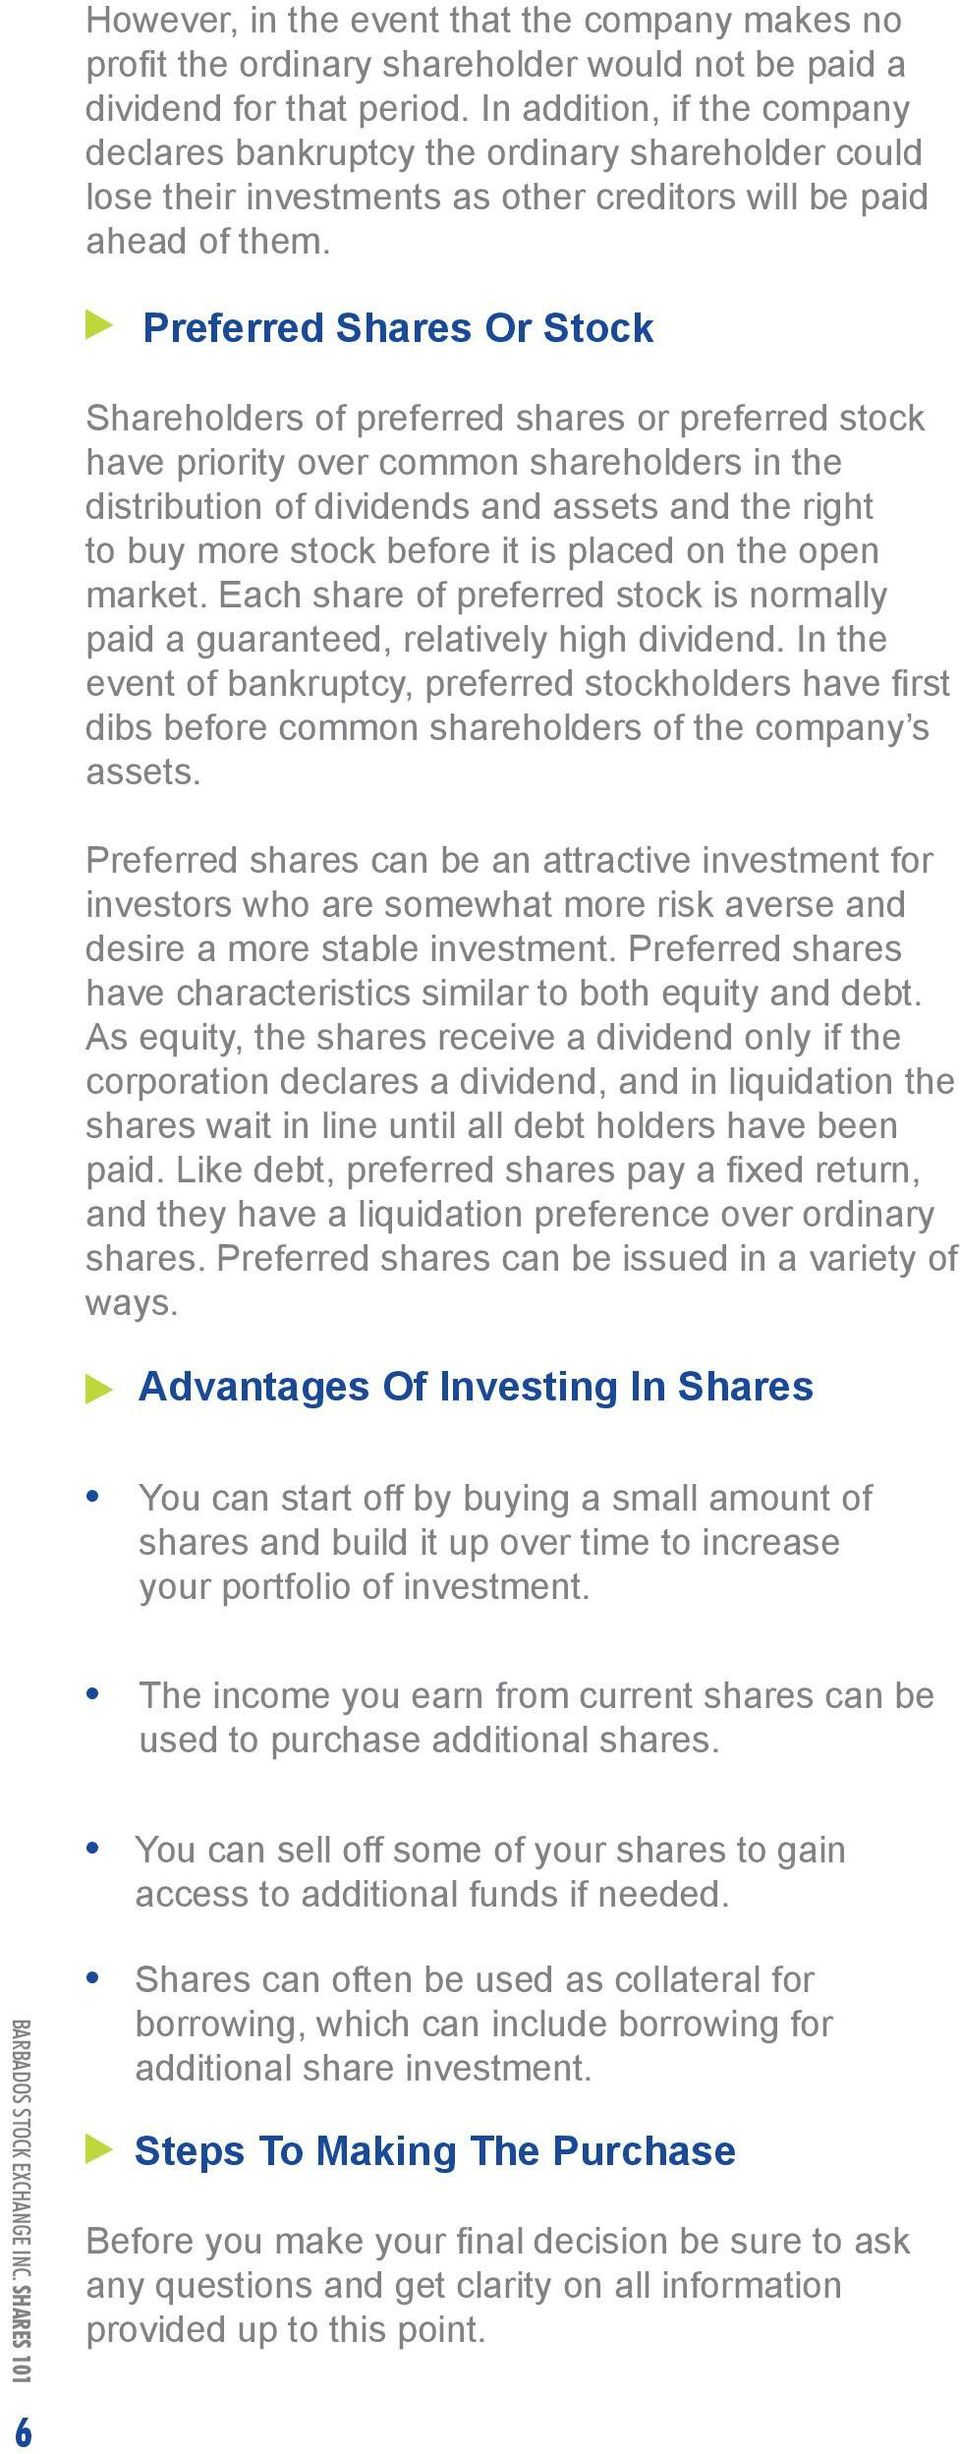 Preferred Shares Or Stock Shareholders of preferred shares or preferred stock have priority over common shareholders in the distribution of dividends and assets and the right to buy more stock before